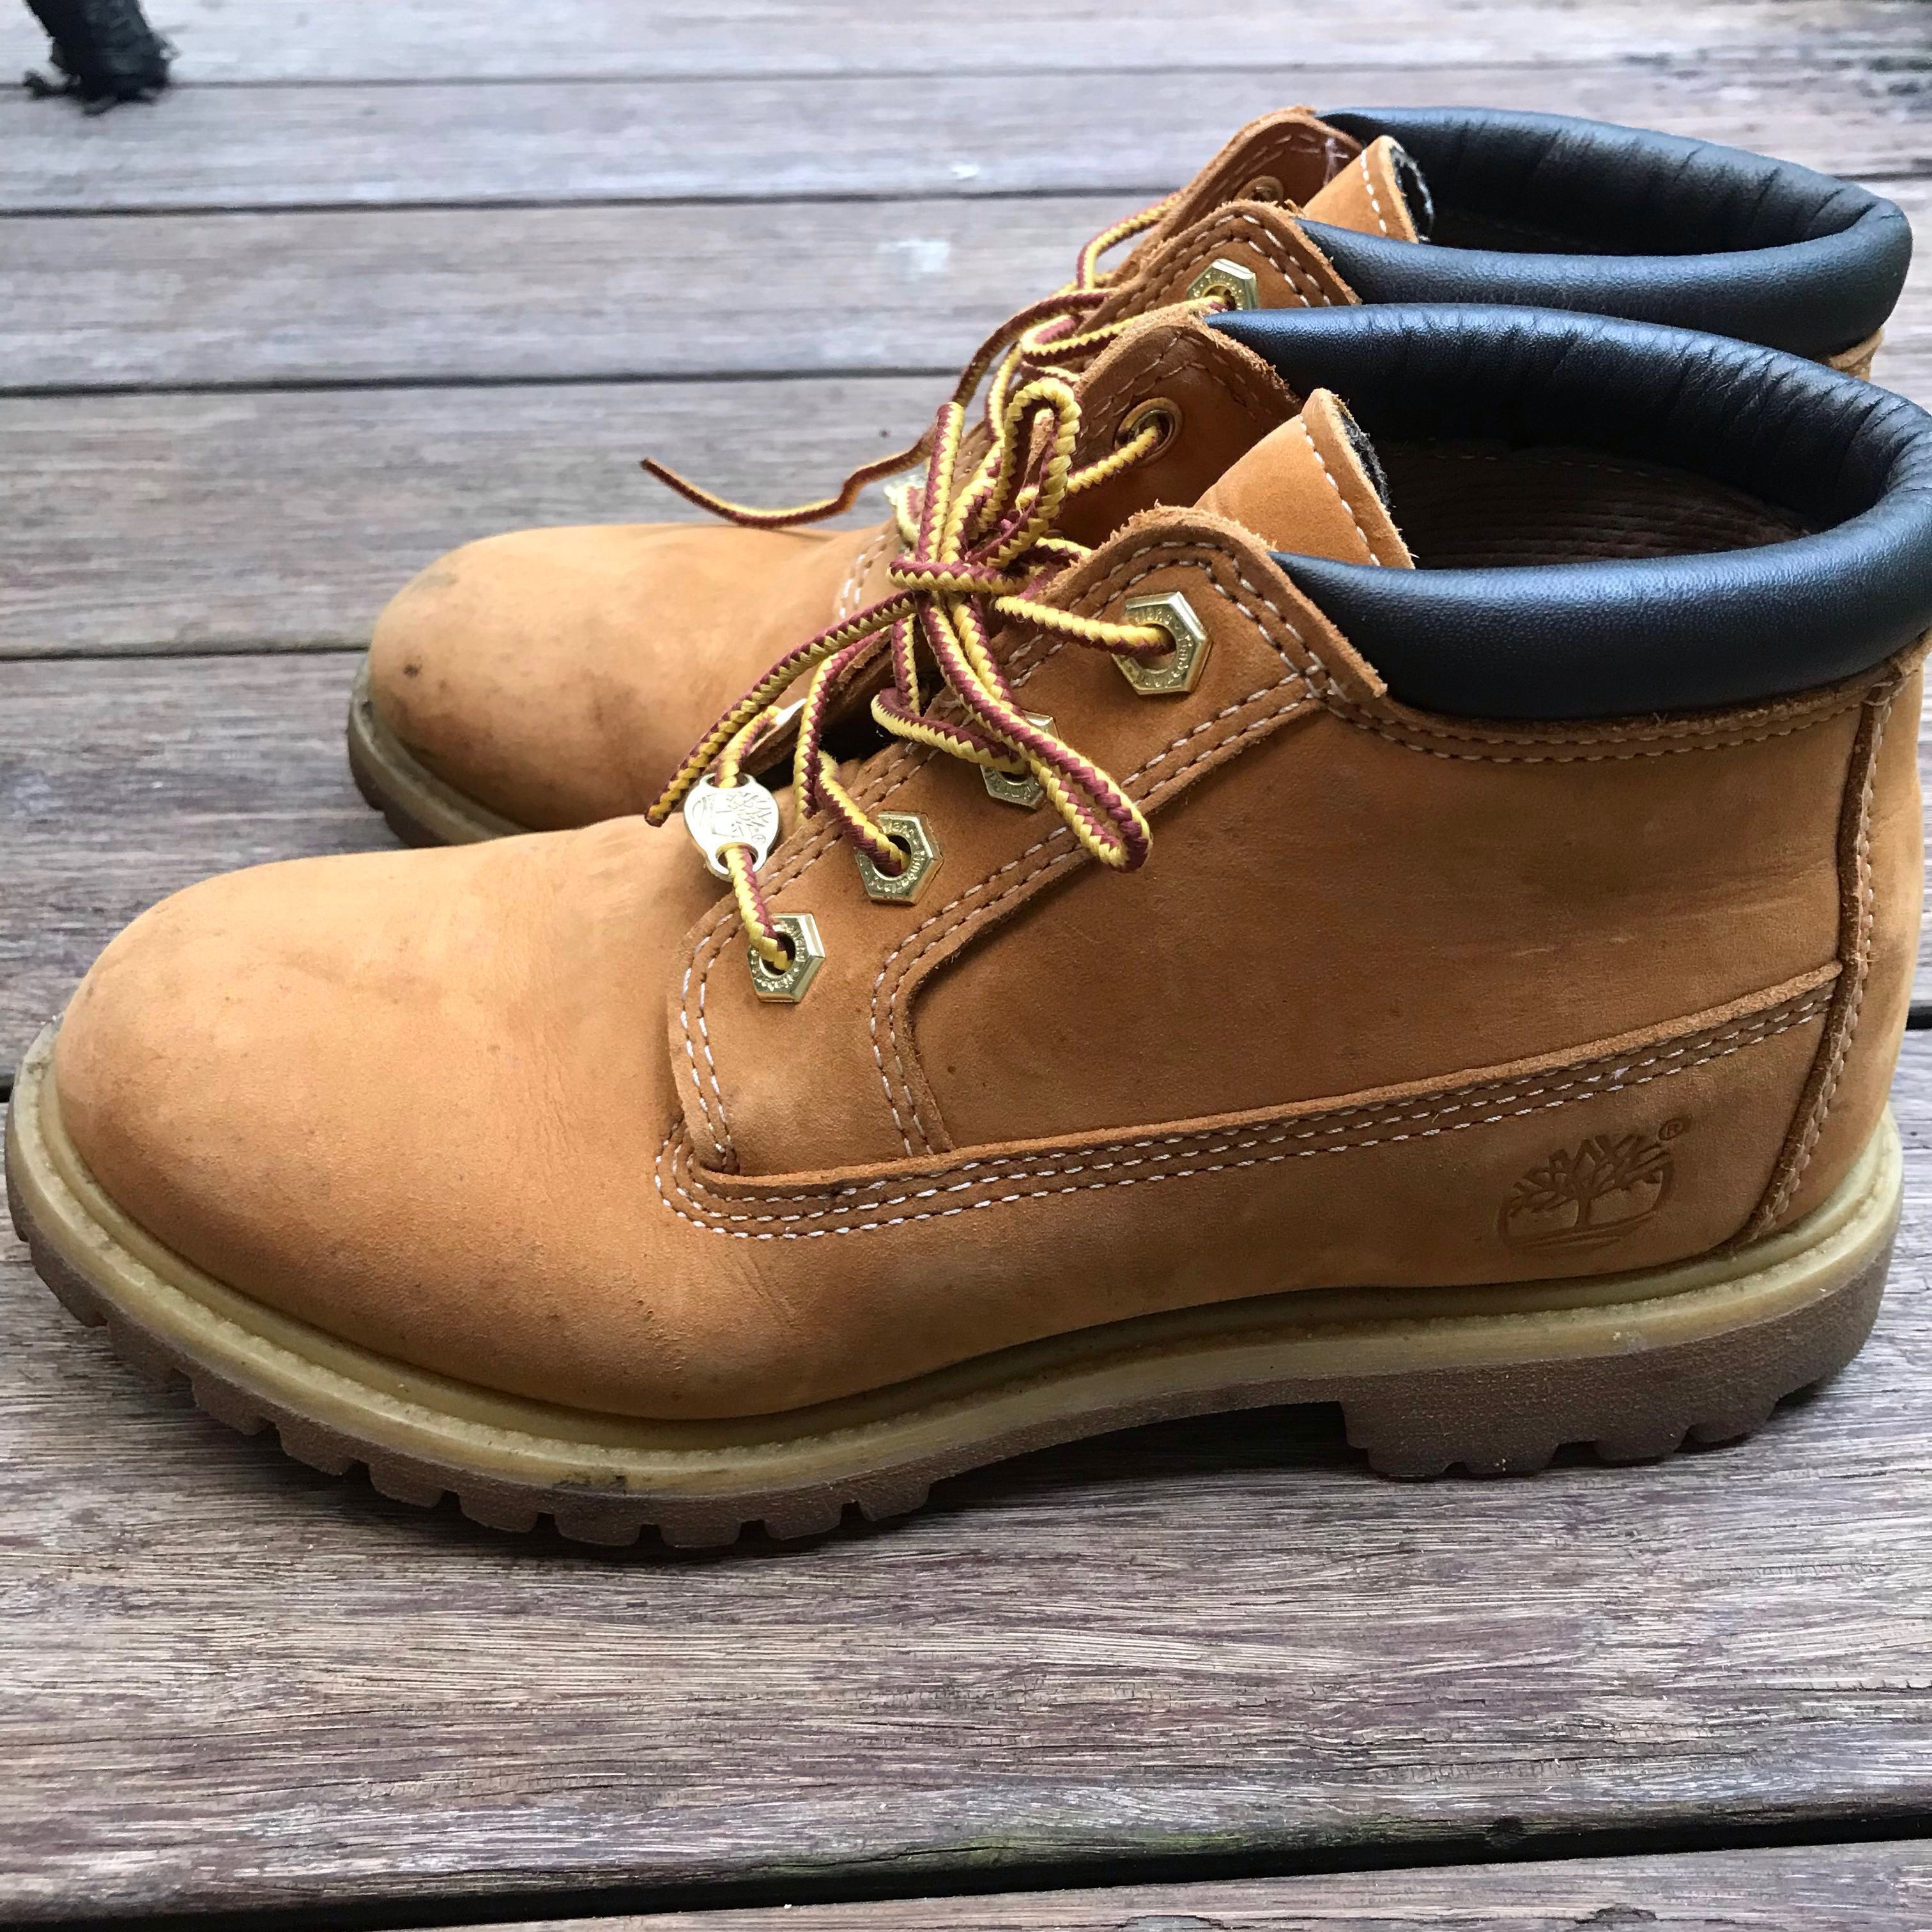 5826a15504da8 Timberland Boots, Women's Fashion, Shoes, Boots on Carousell